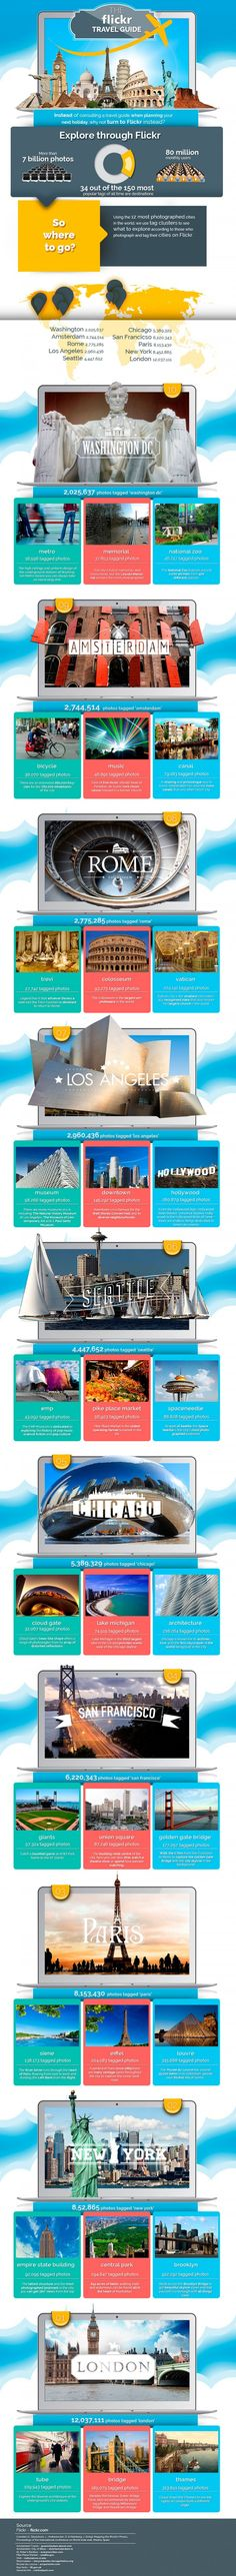 The Flickr World Travel Guide